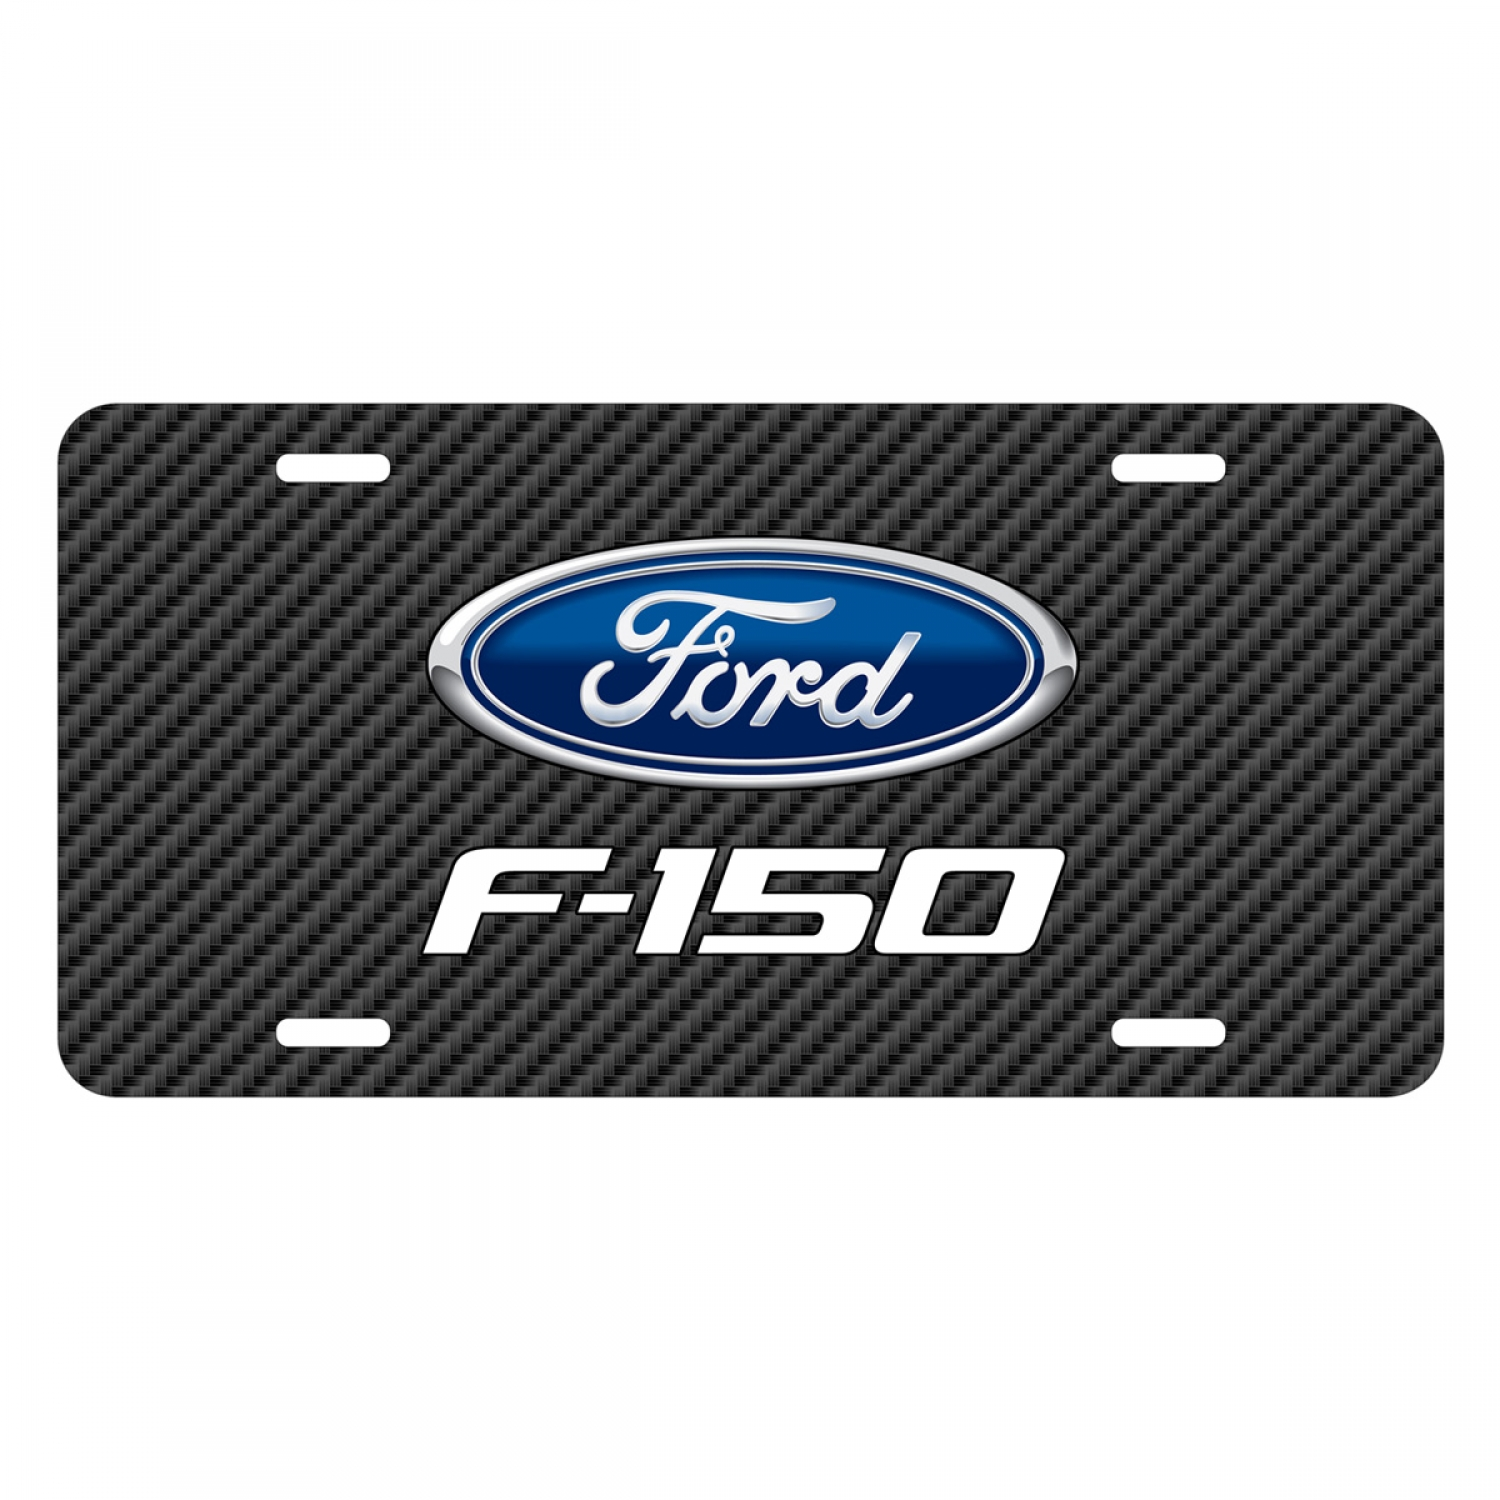 Ford F-150 2009 to 2014 Black Carbon Fiber Texture Graphic UV Metal License Plate